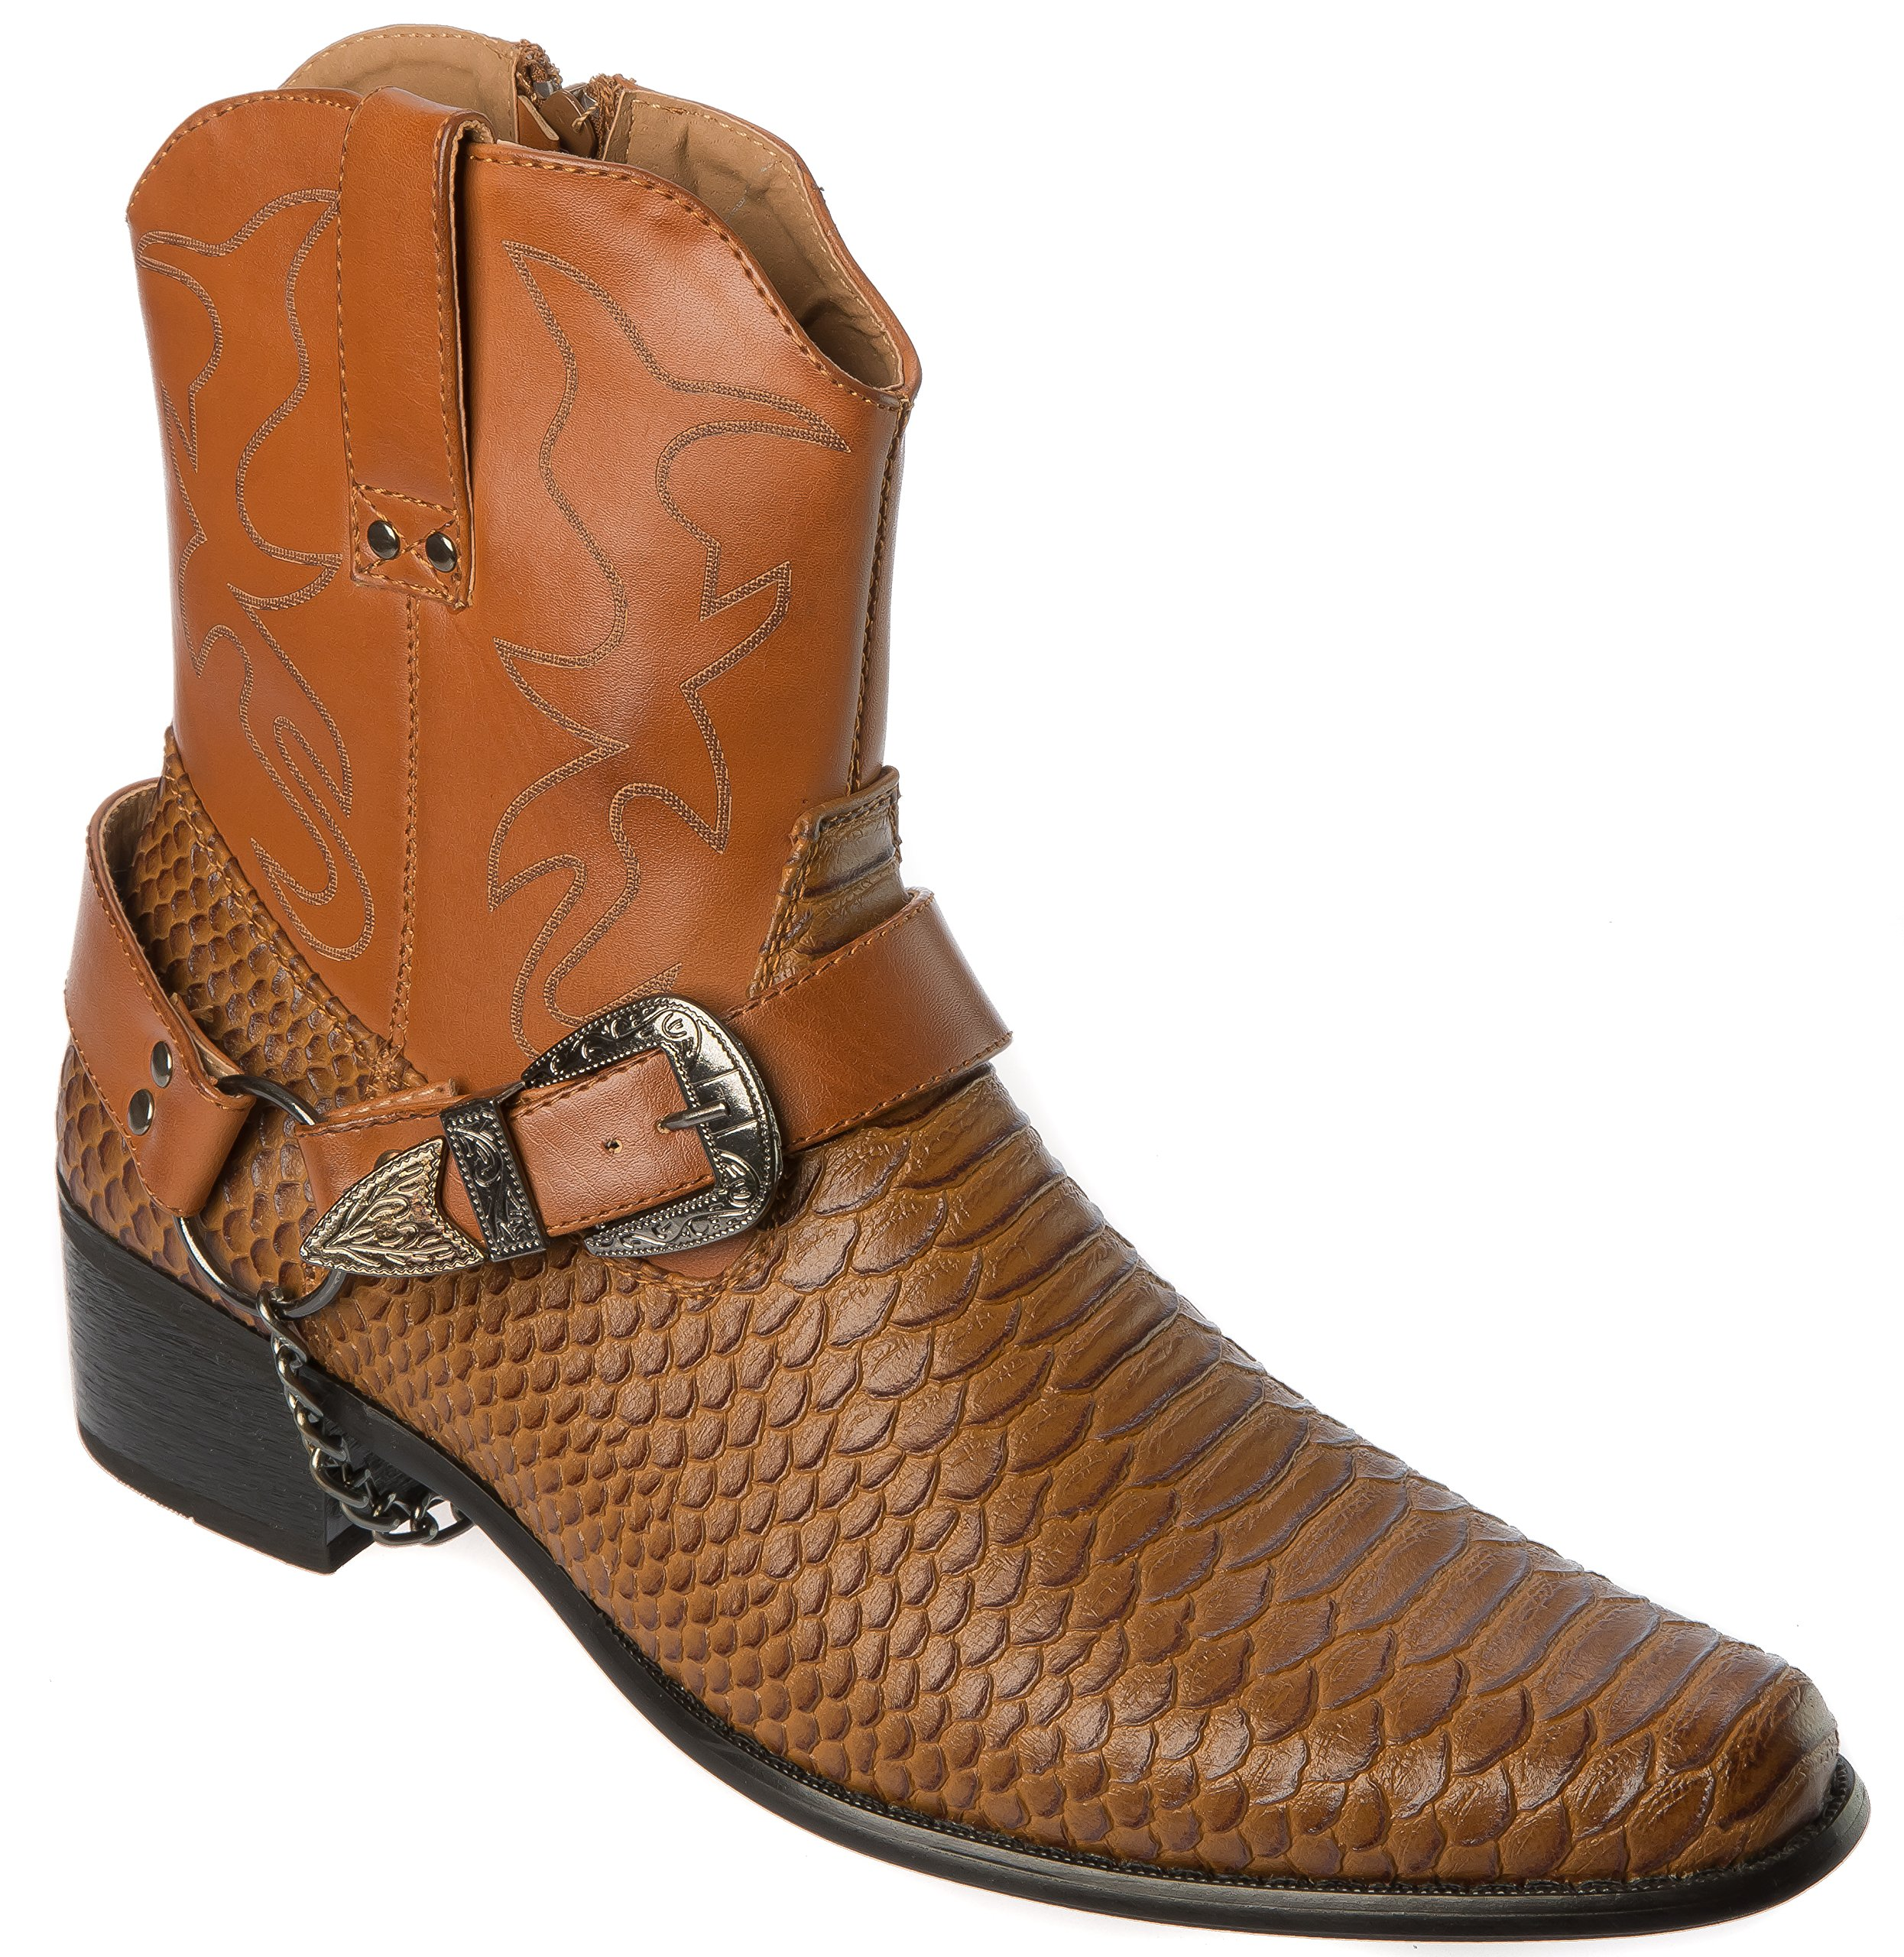 Alberto Fellini Western Style Boots New Upgrade PU-Leather Cowboy Brown Dress Shoes Size 9.5